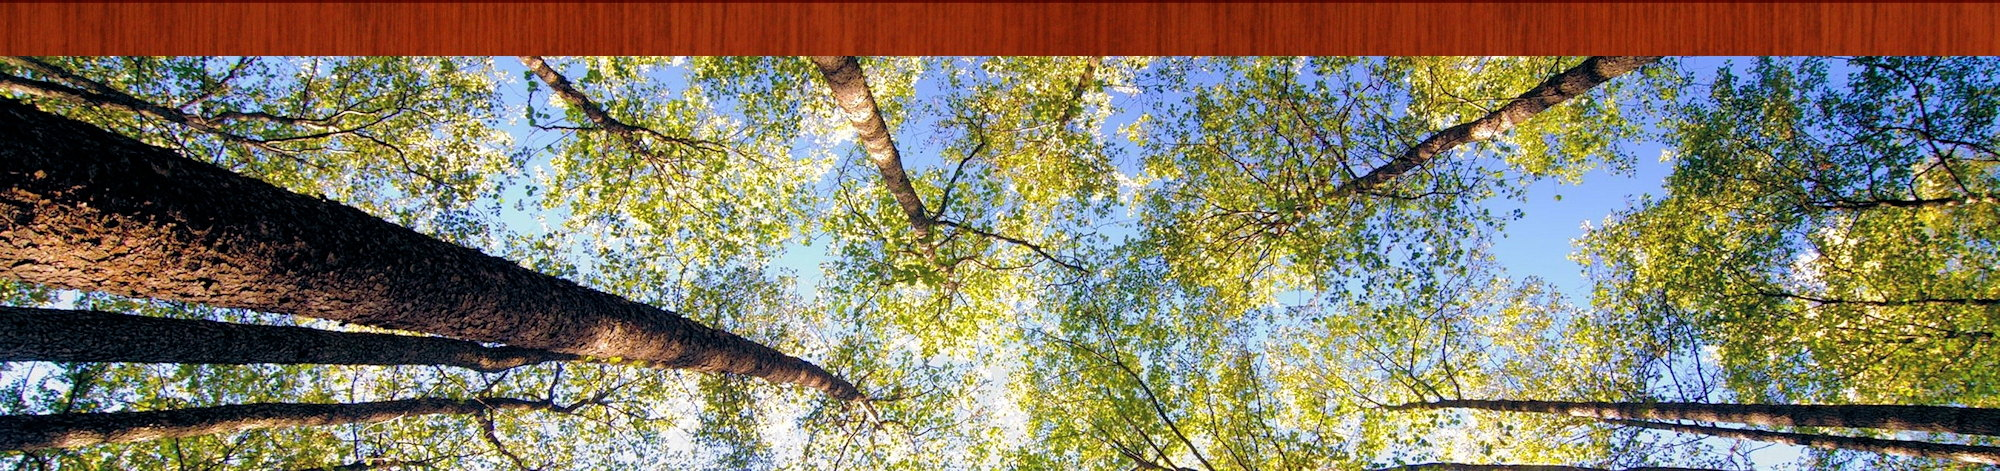 Awe-inspiring view looking up from the forest floor.